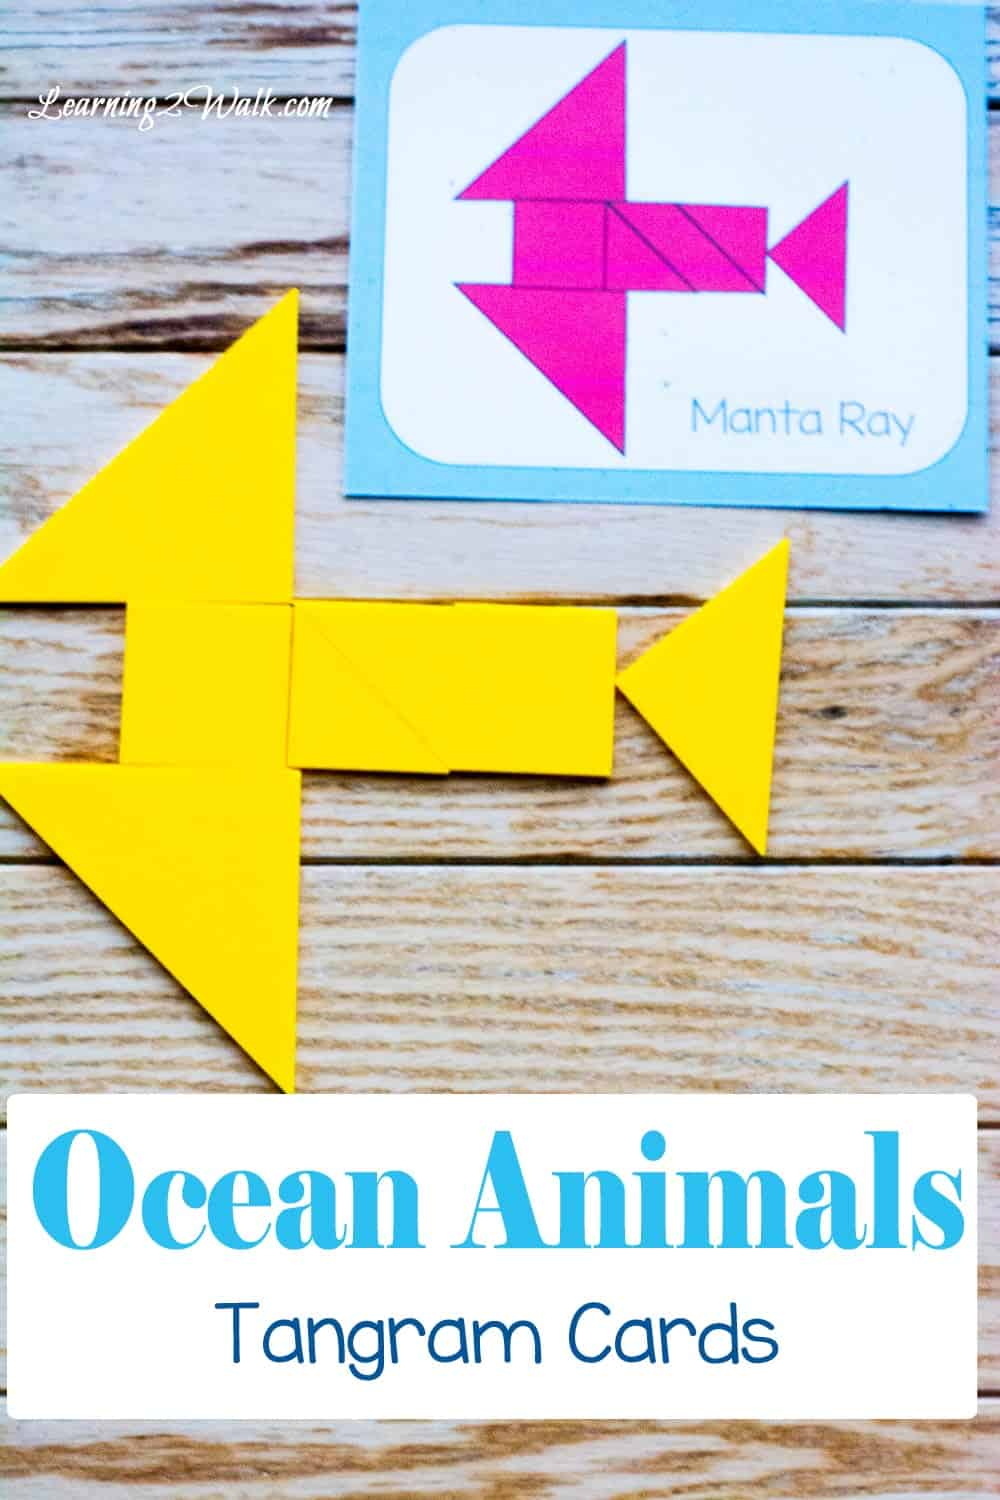 Ocean Animals Tangram Cards